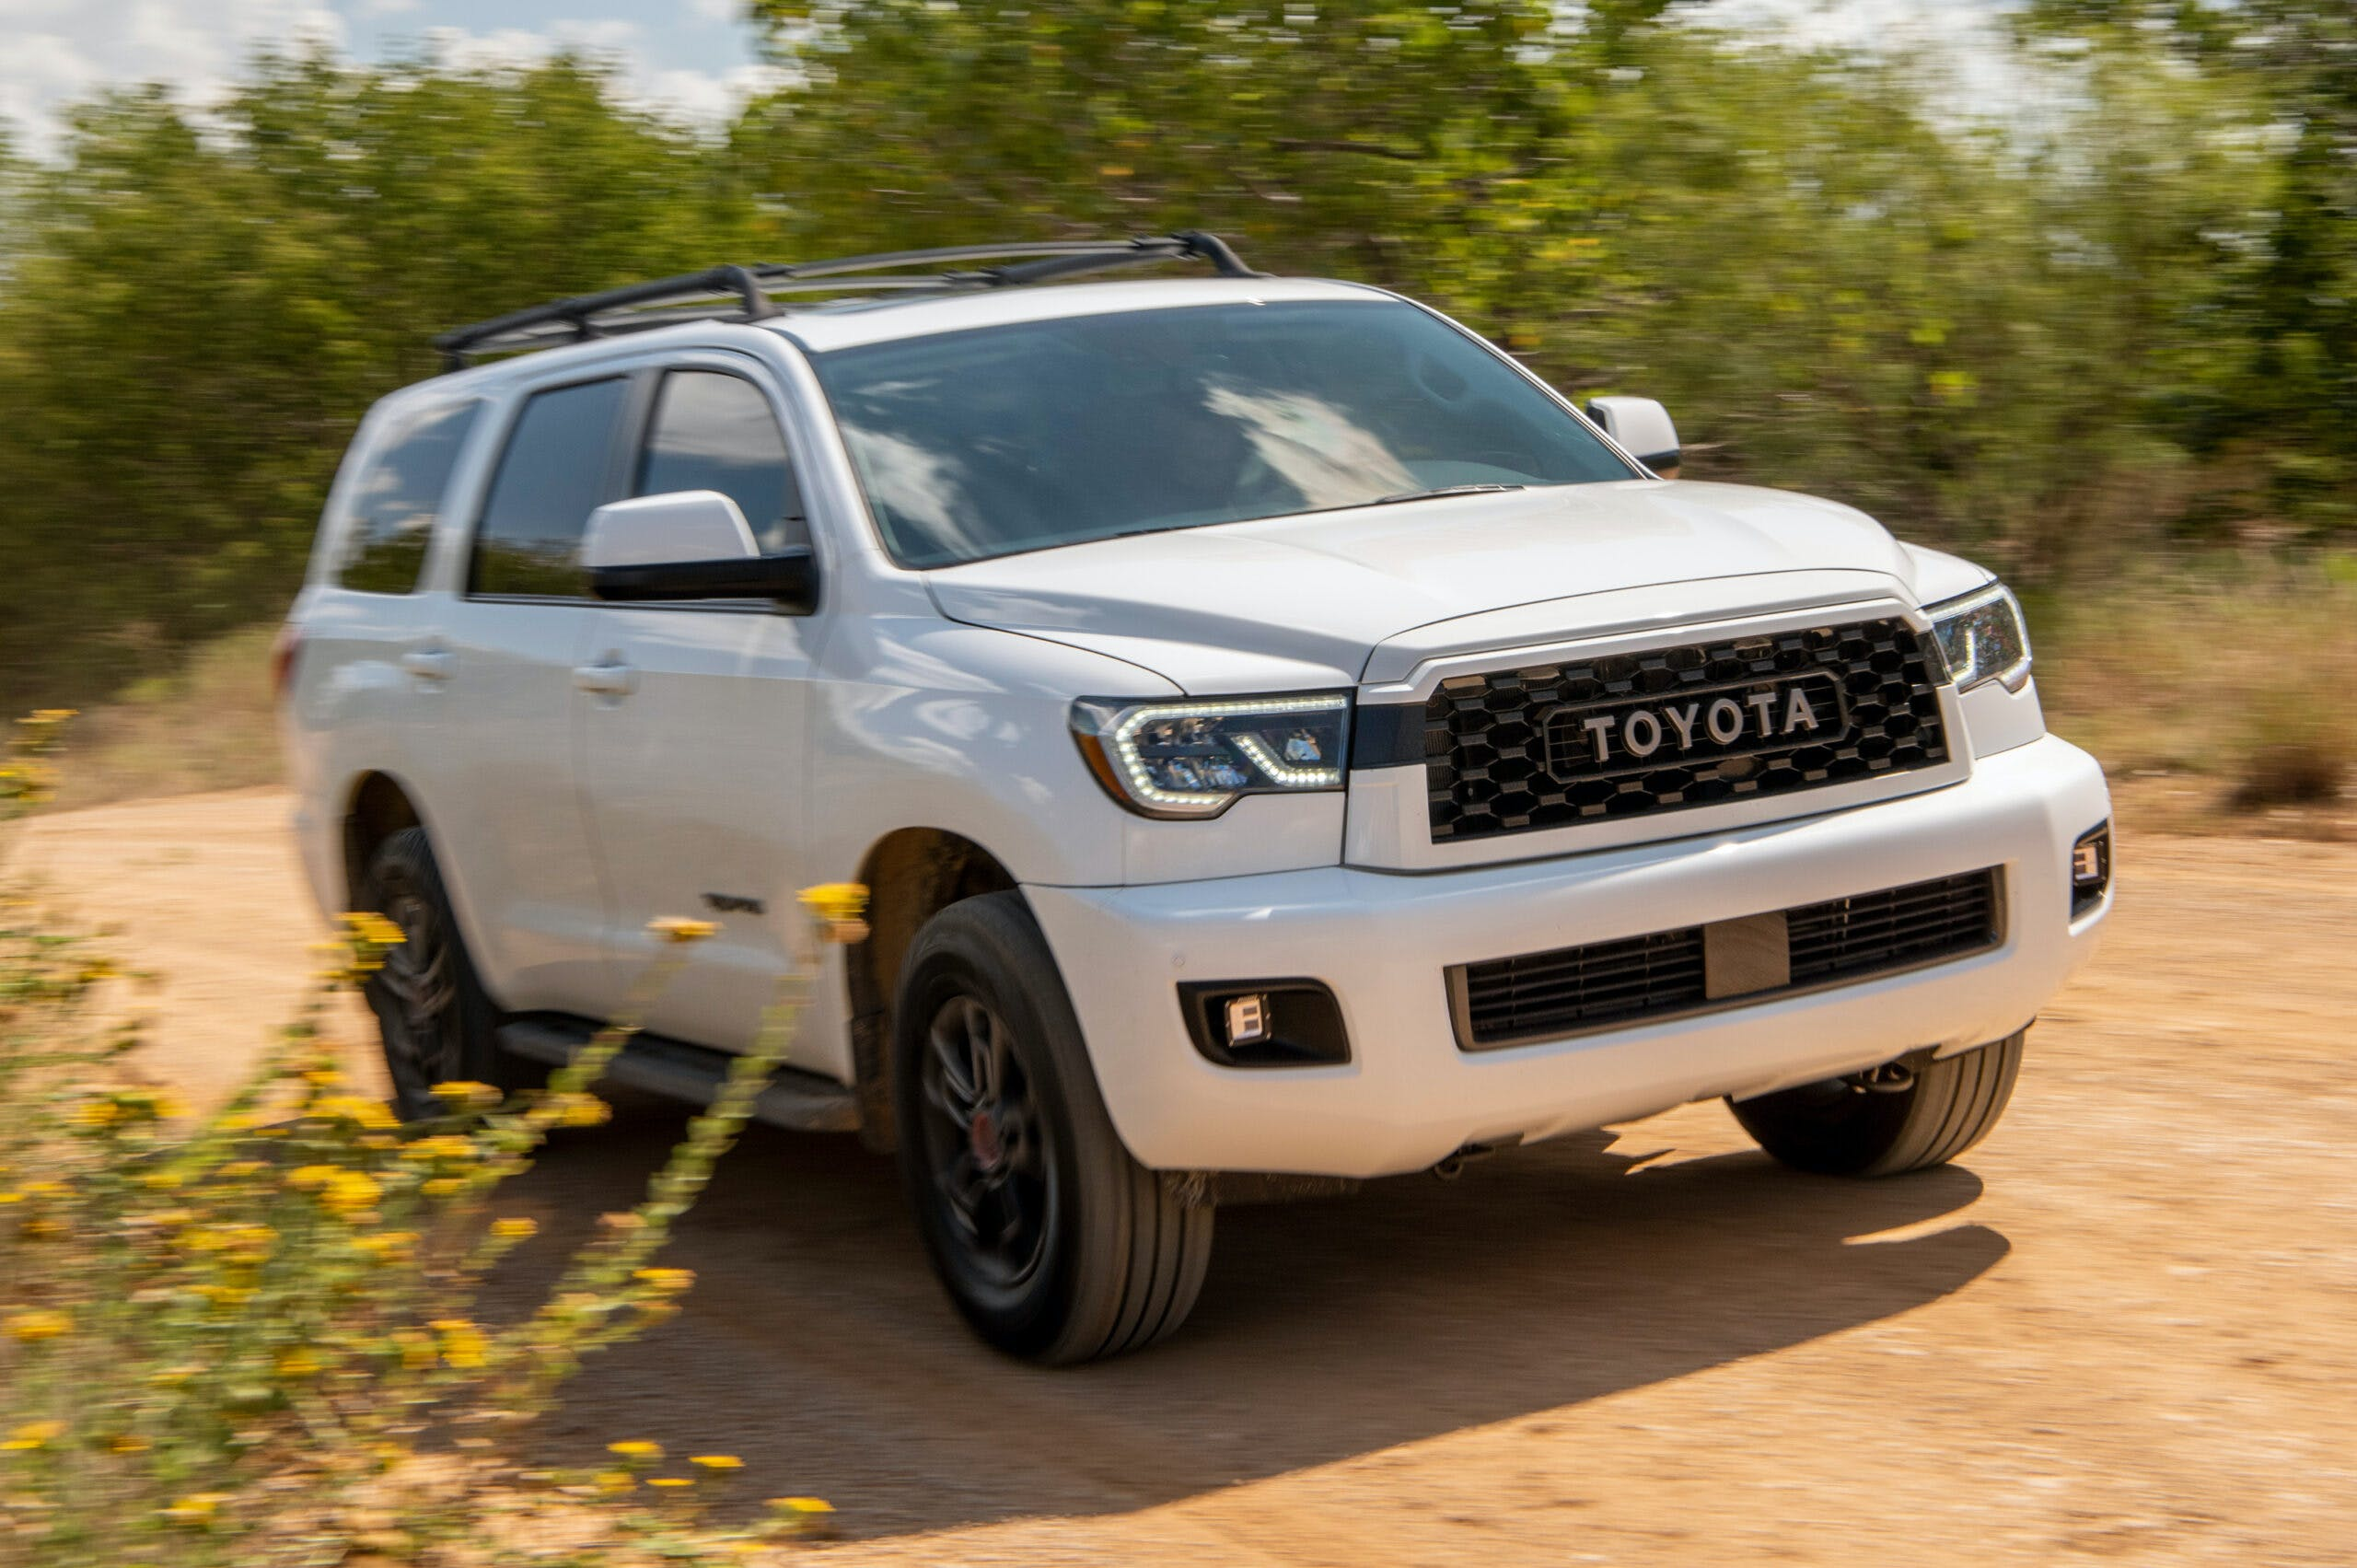 Tested: 2020 Toyota Sequoia TRD Pro Is Fun but Dated | CARFAX